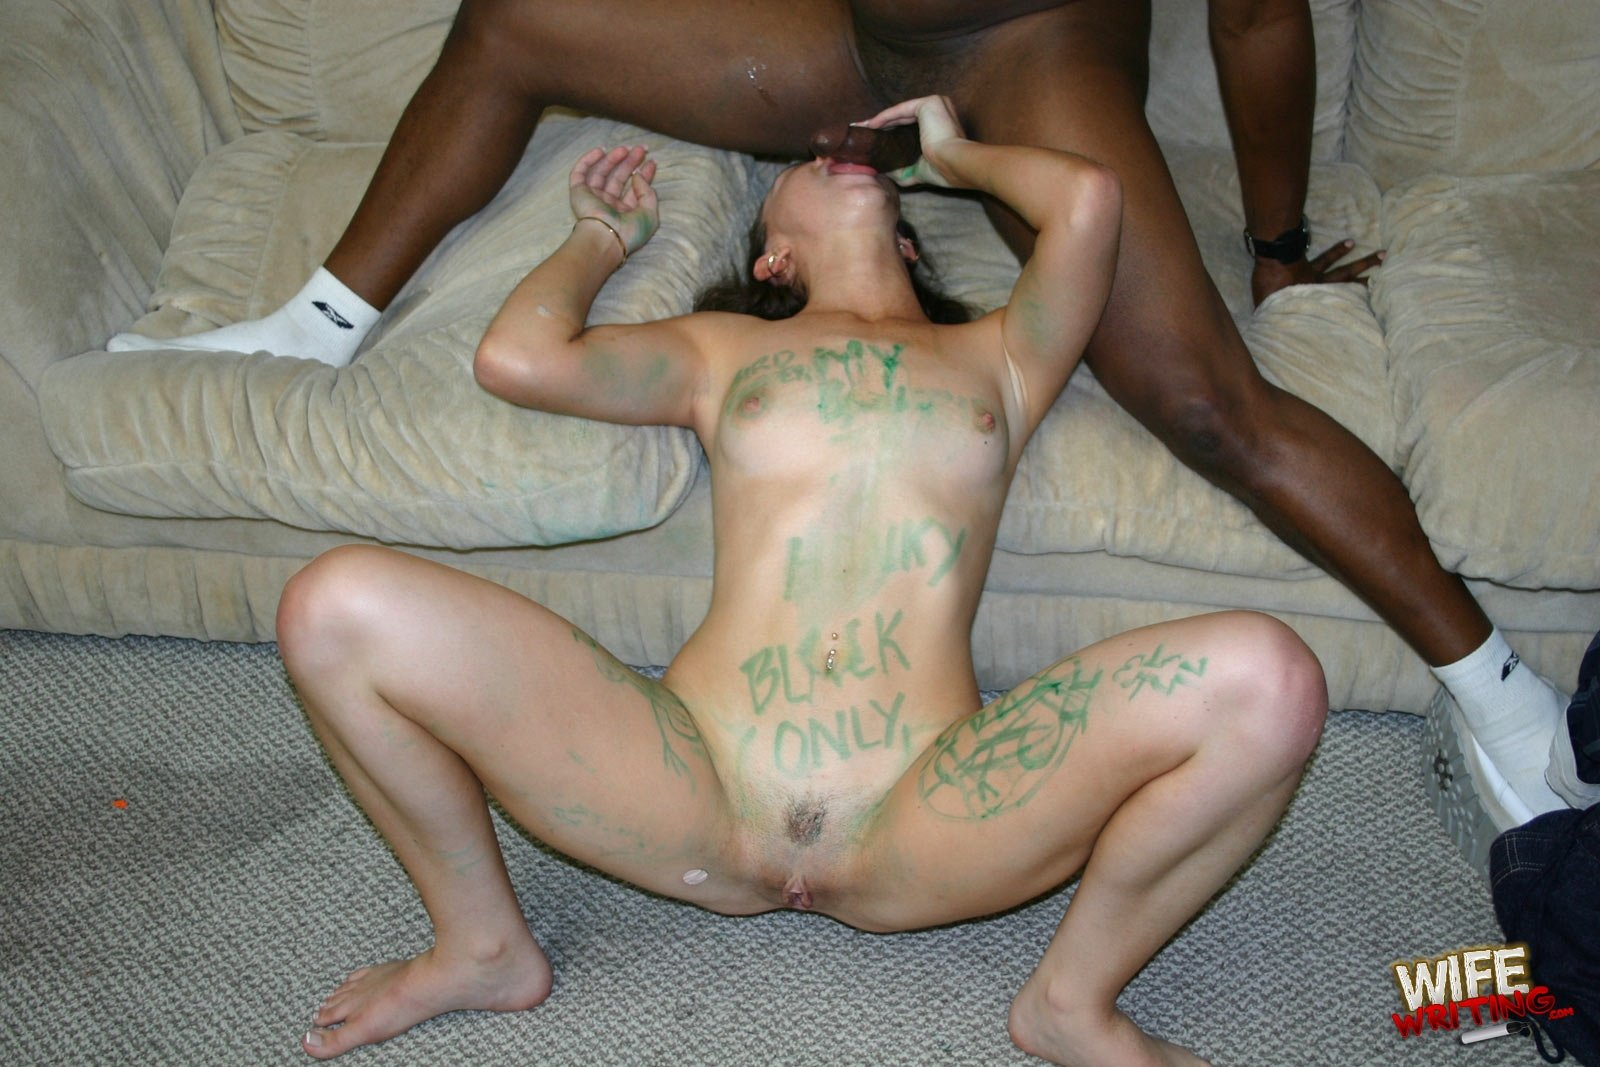 Erotic story about wife